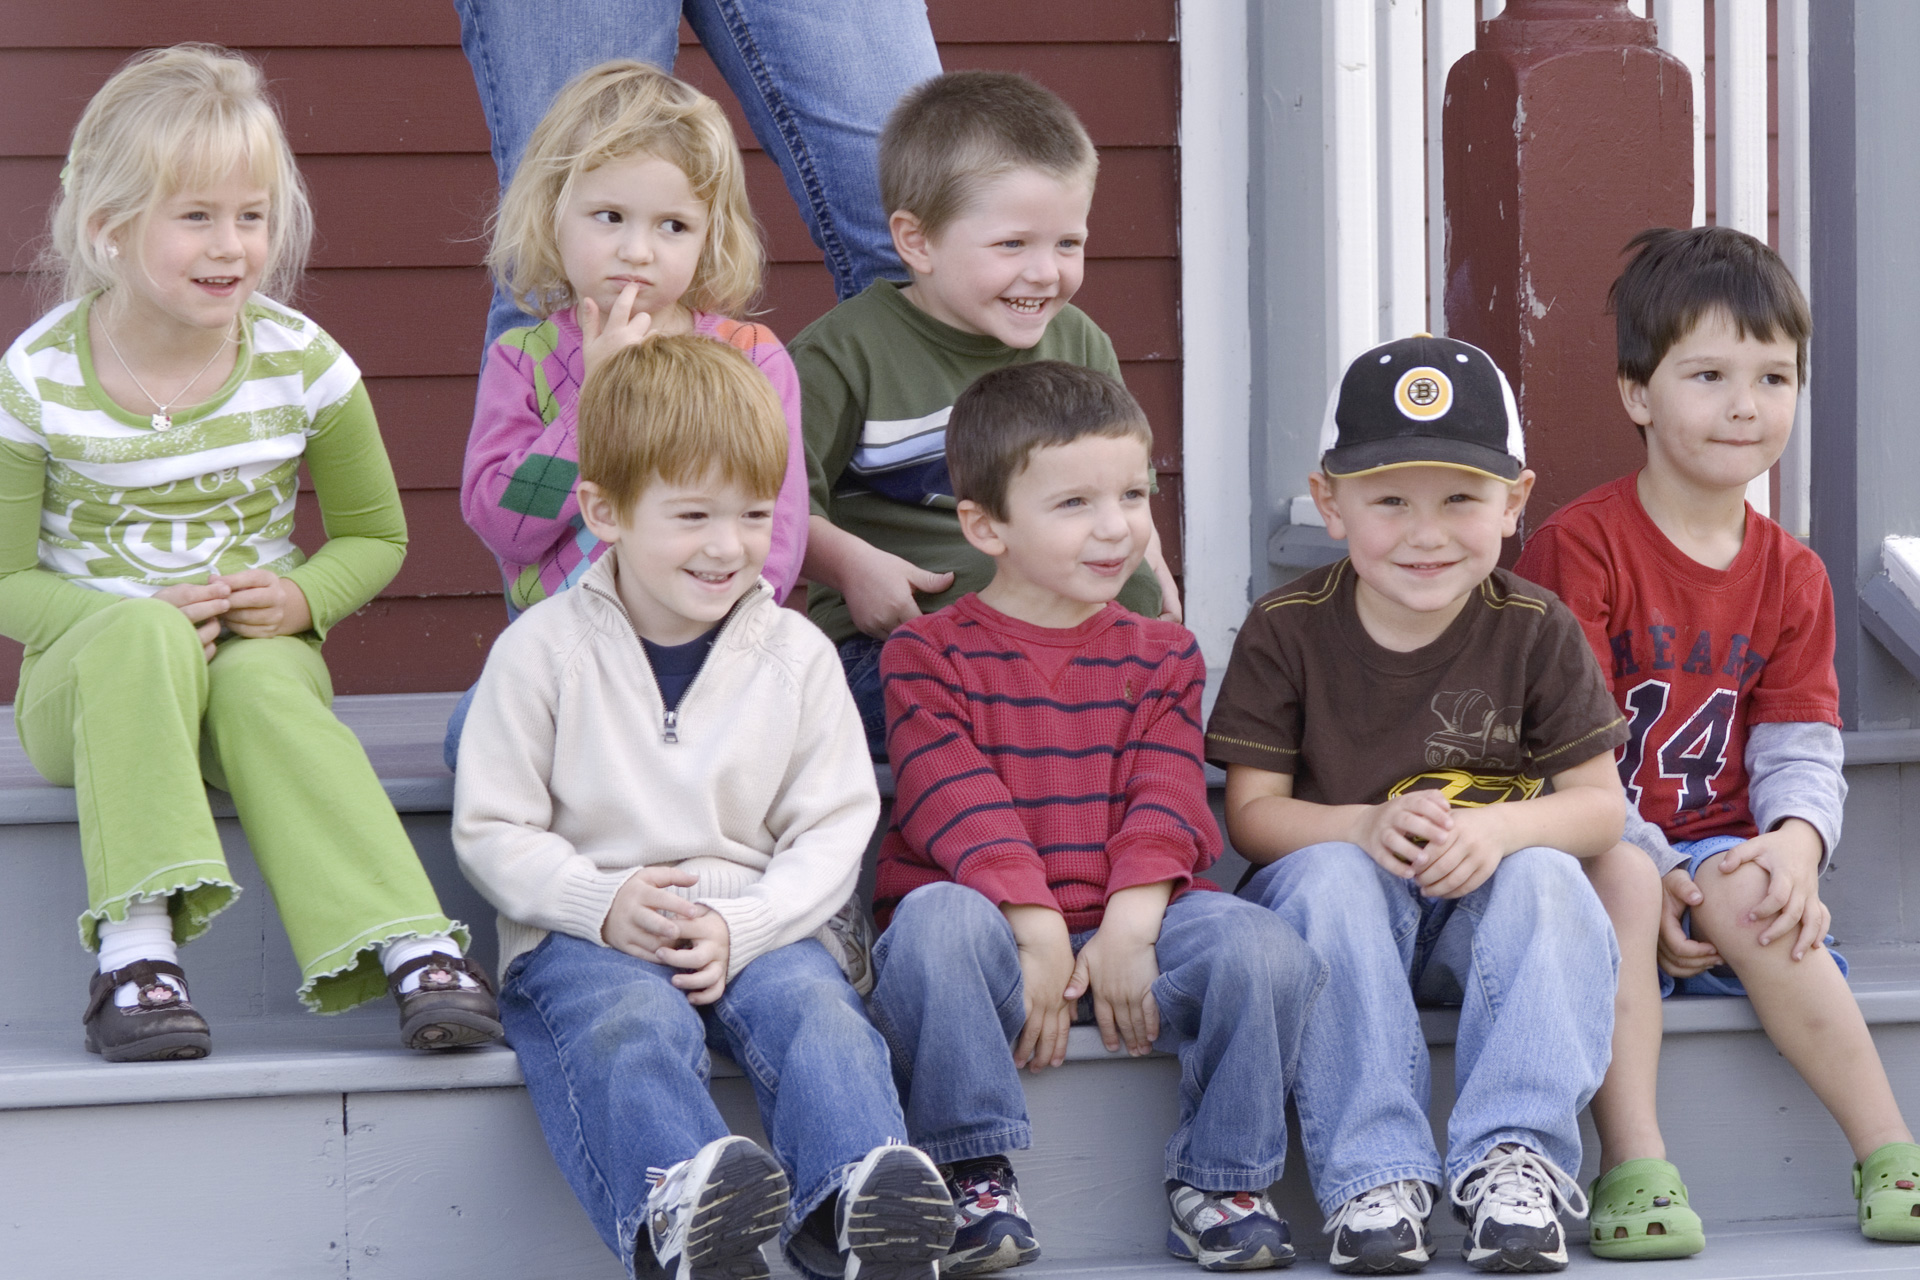 A small group of children sit on the stairs of their school